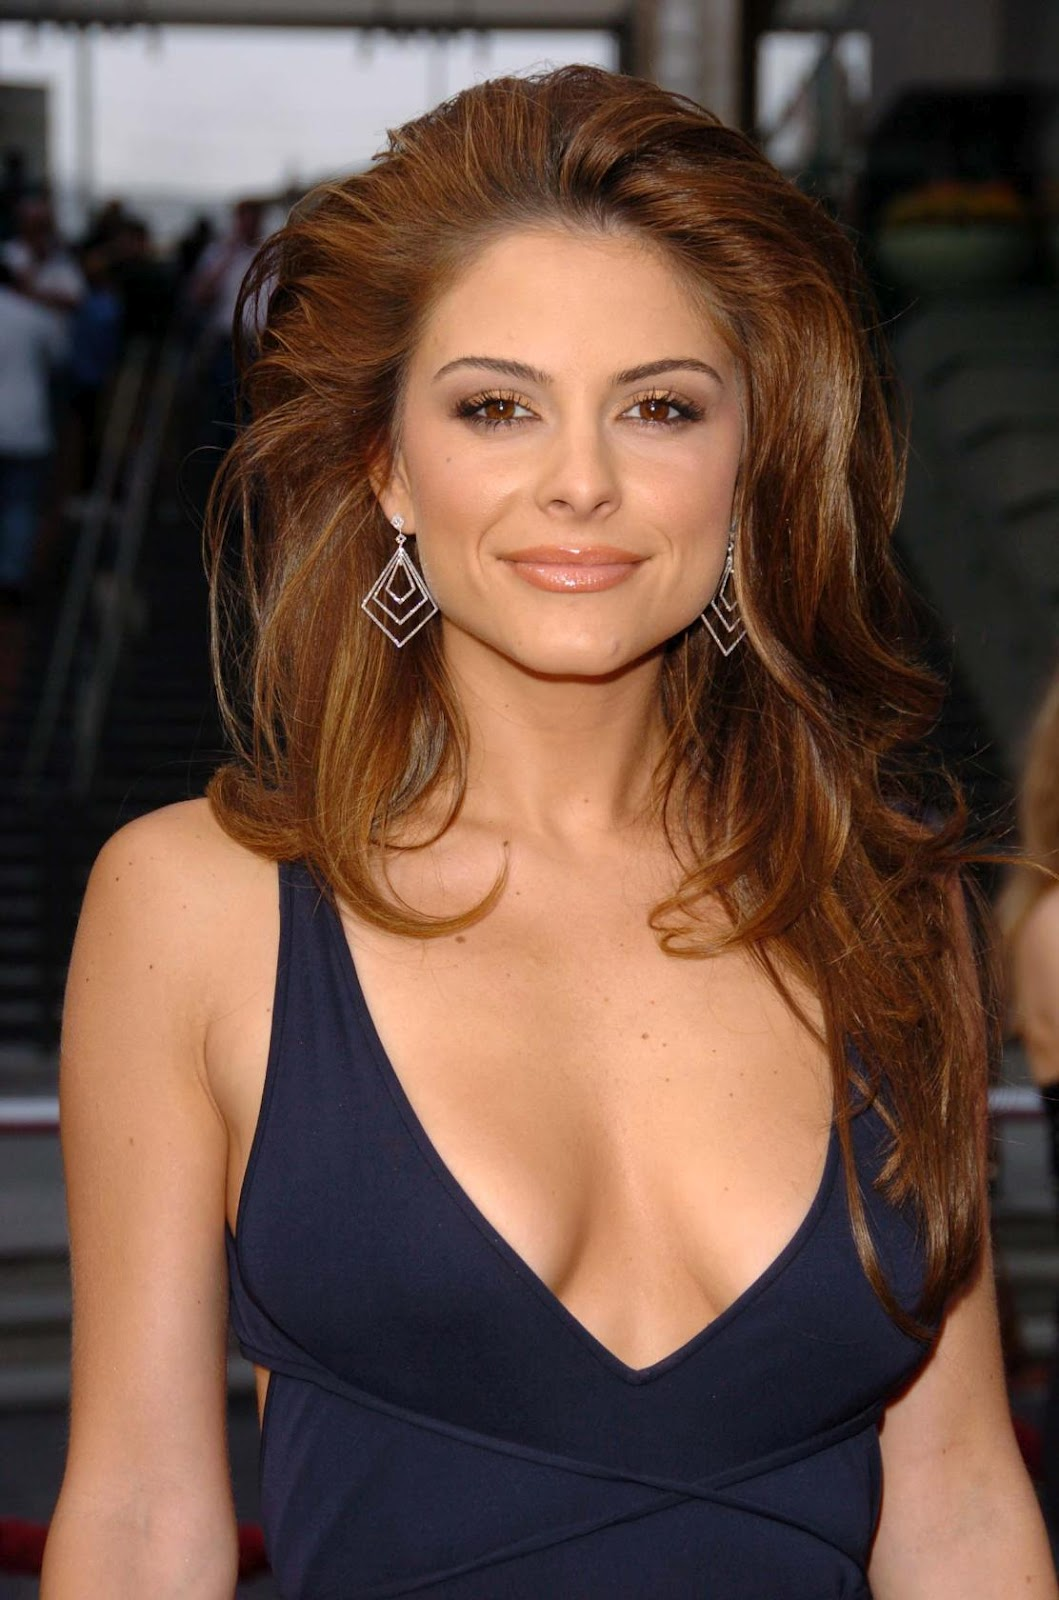 Cleavage Maria Menounos naked (83 foto and video), Tits, Paparazzi, Boobs, braless 2006